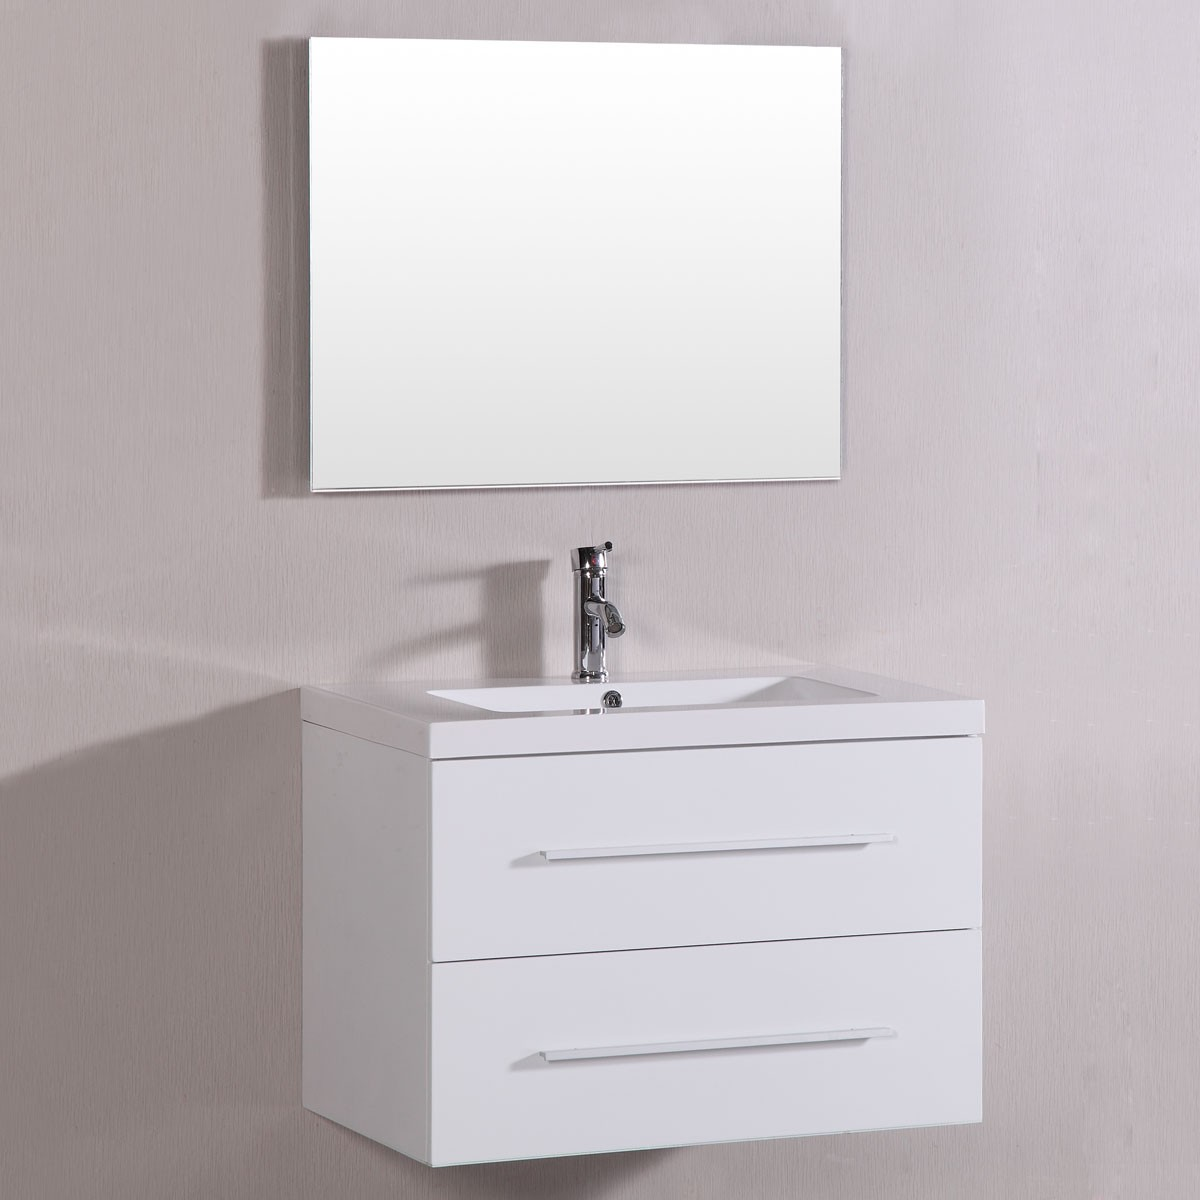 40 In Mdf Bathroom Vanity Set With Single Sink And Mirror Dk Tm8120s